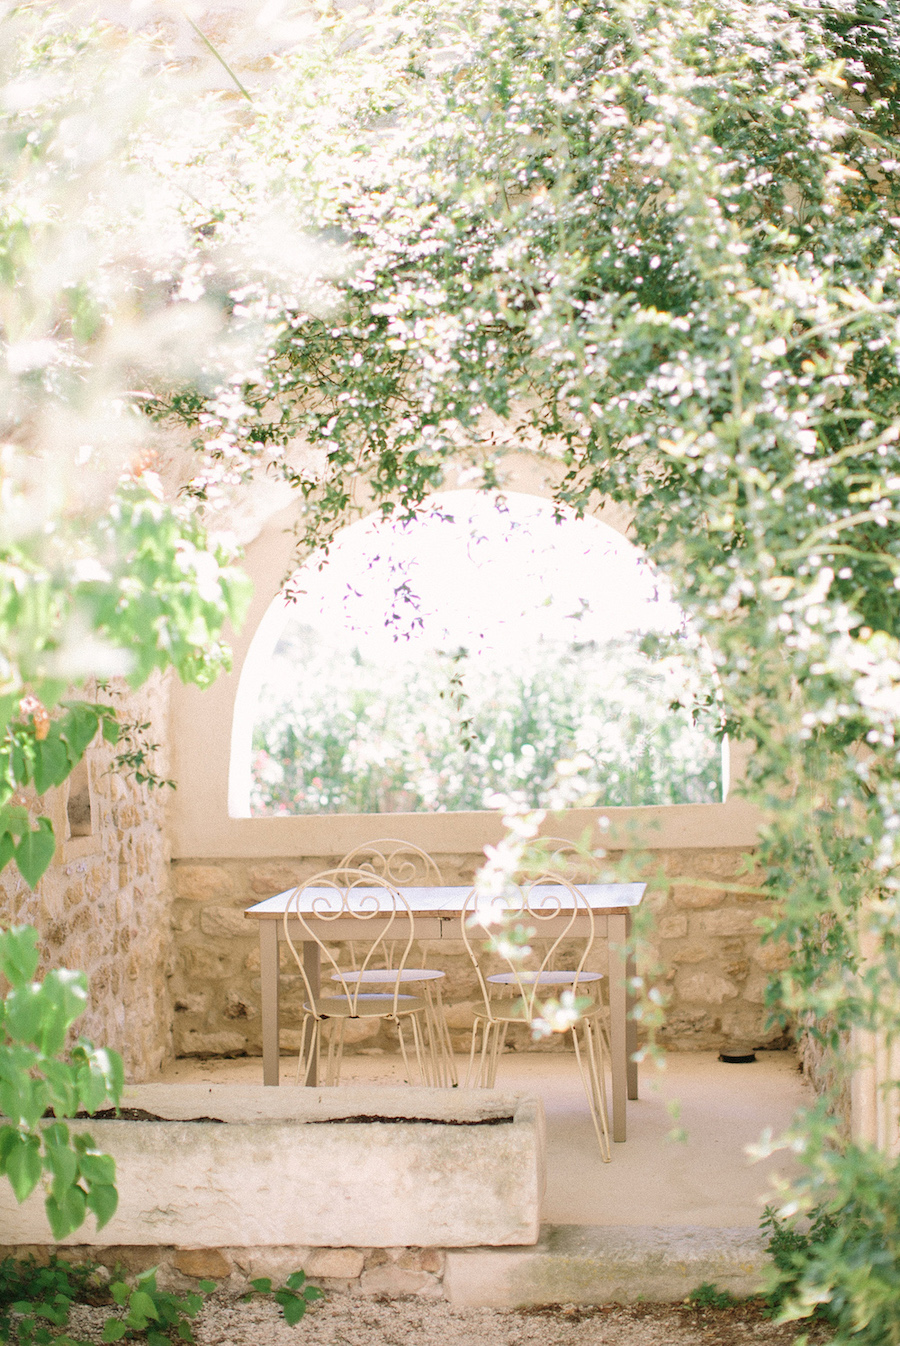 saya-photography-rustic-french-wedding-provence-domaines-de-patras-23.jpg